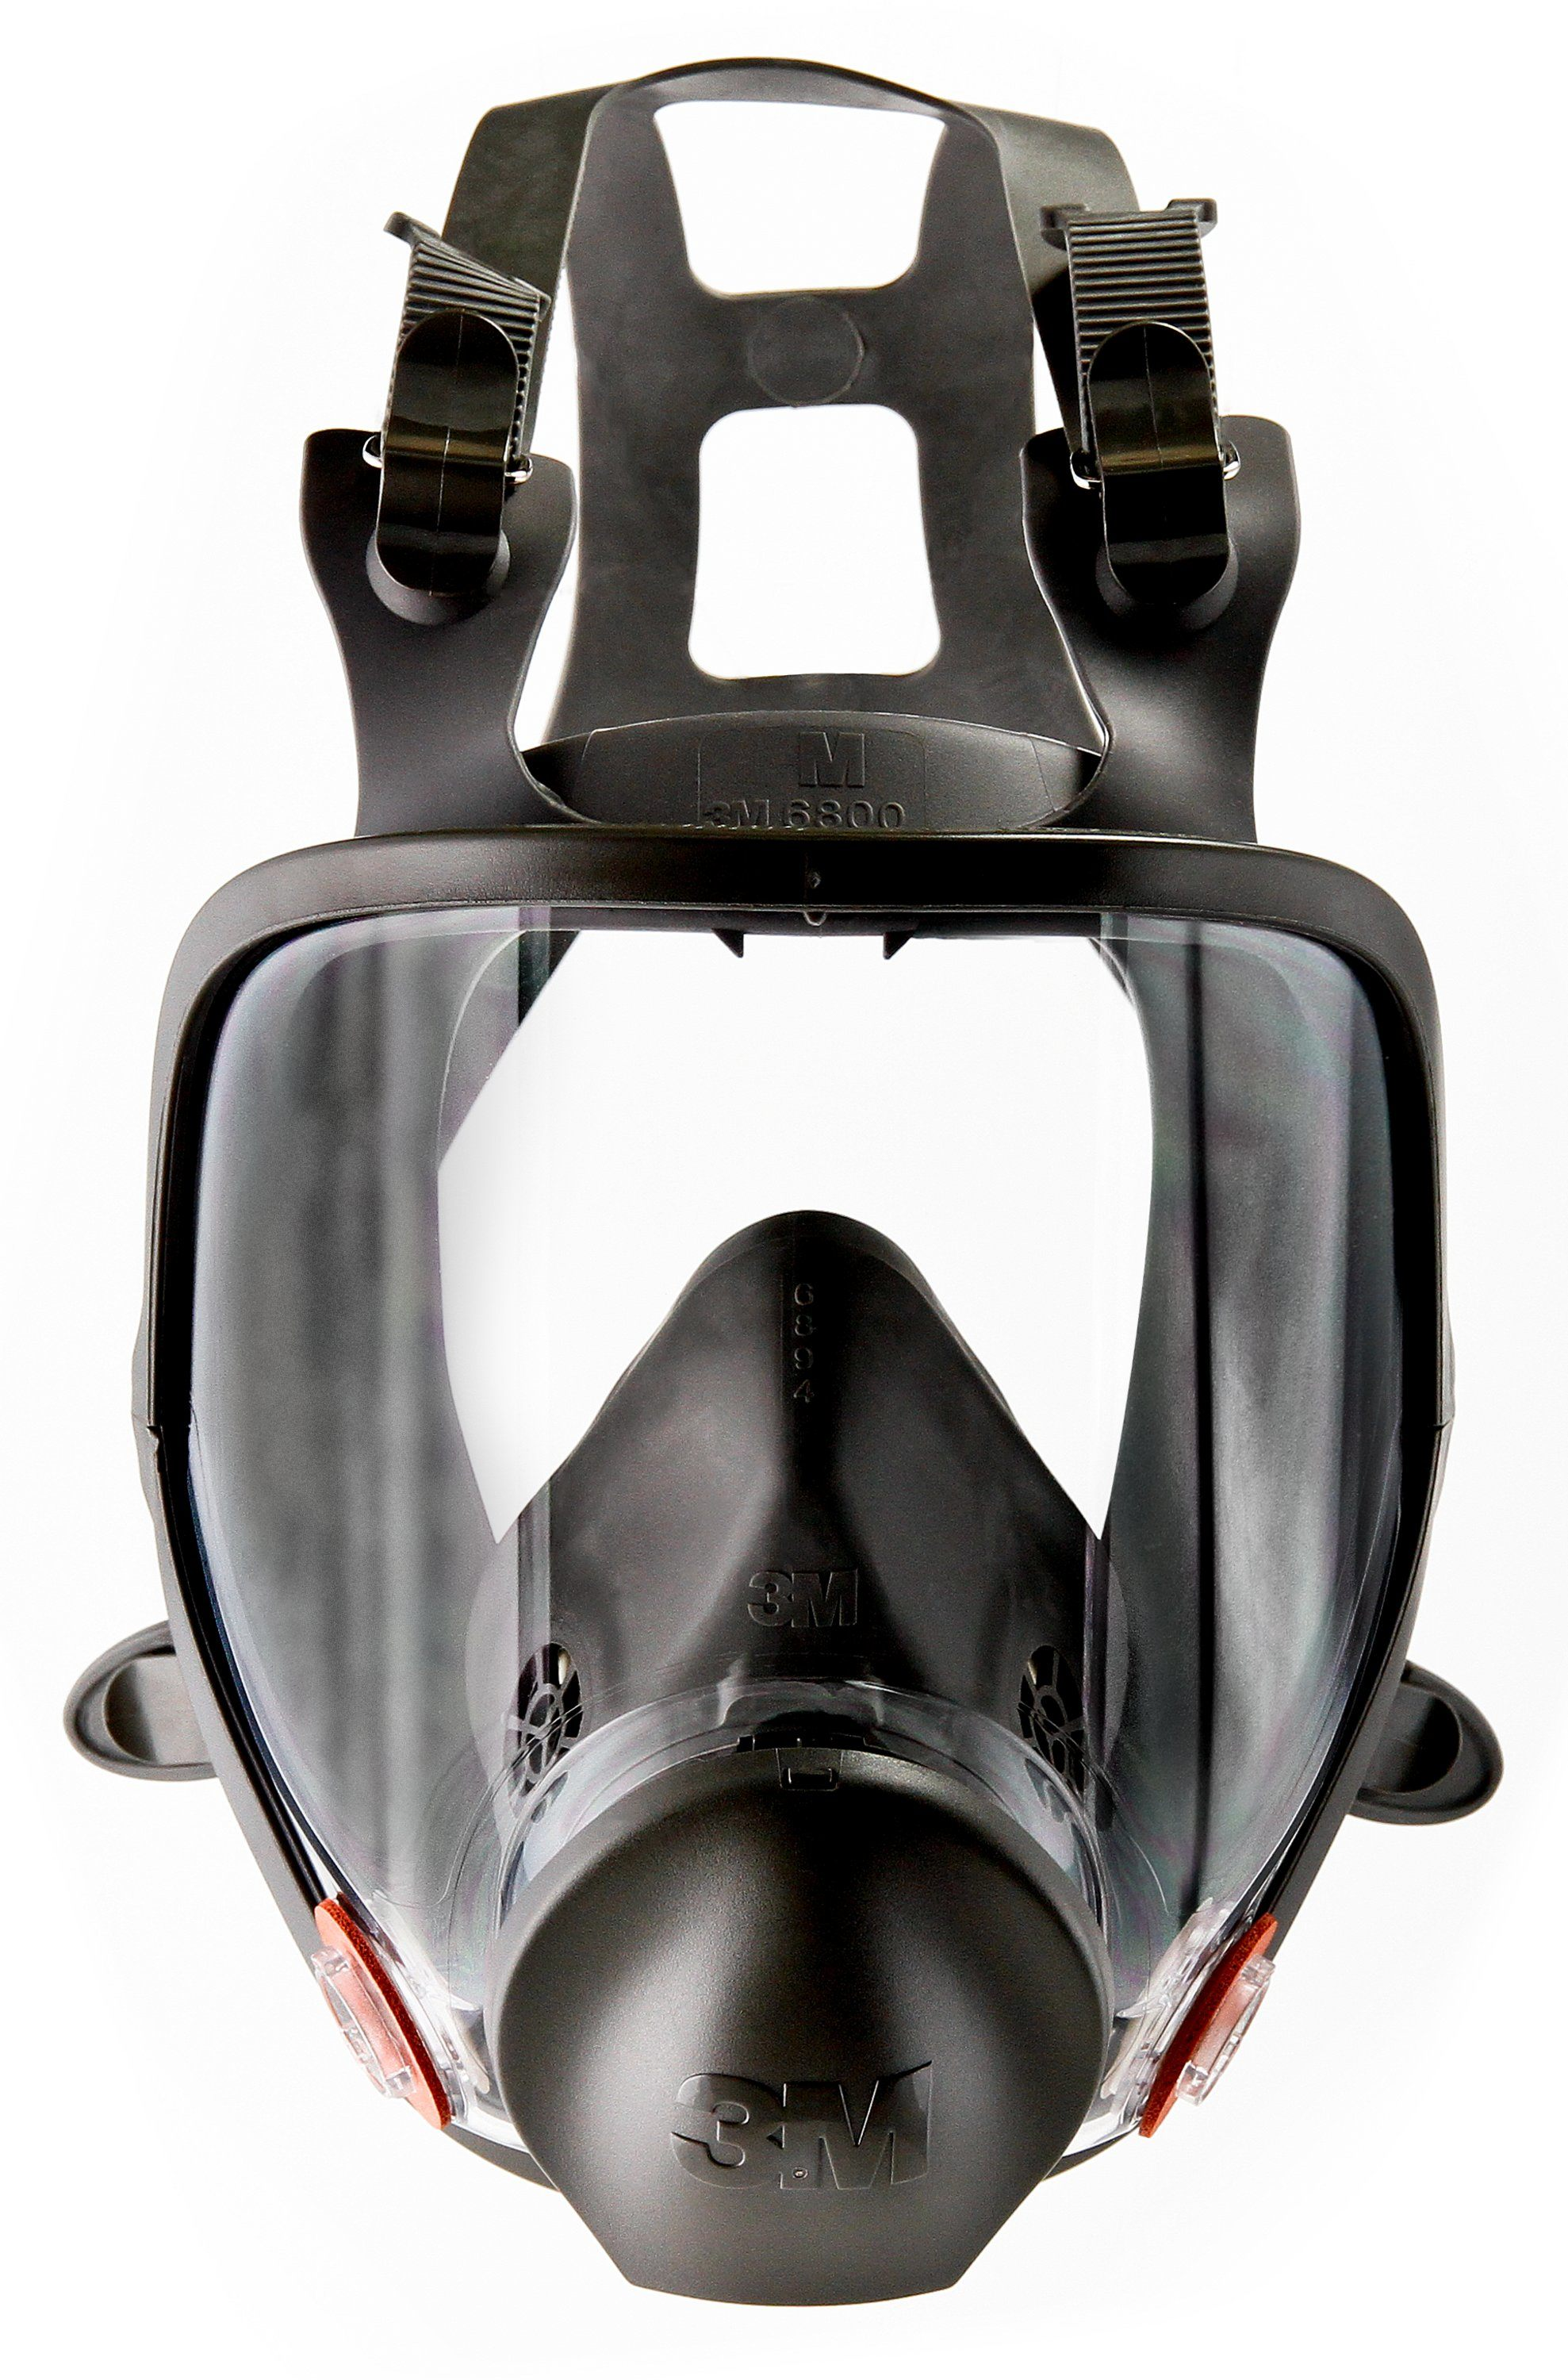 3M™ 054007-91717 6000 Half Facepiece Reusable Respirator, M, Bayonet Connection -- DUE TO HIGH DEMAND, we may be unable to fulfill any orders for this product regardless of stock status indicated.